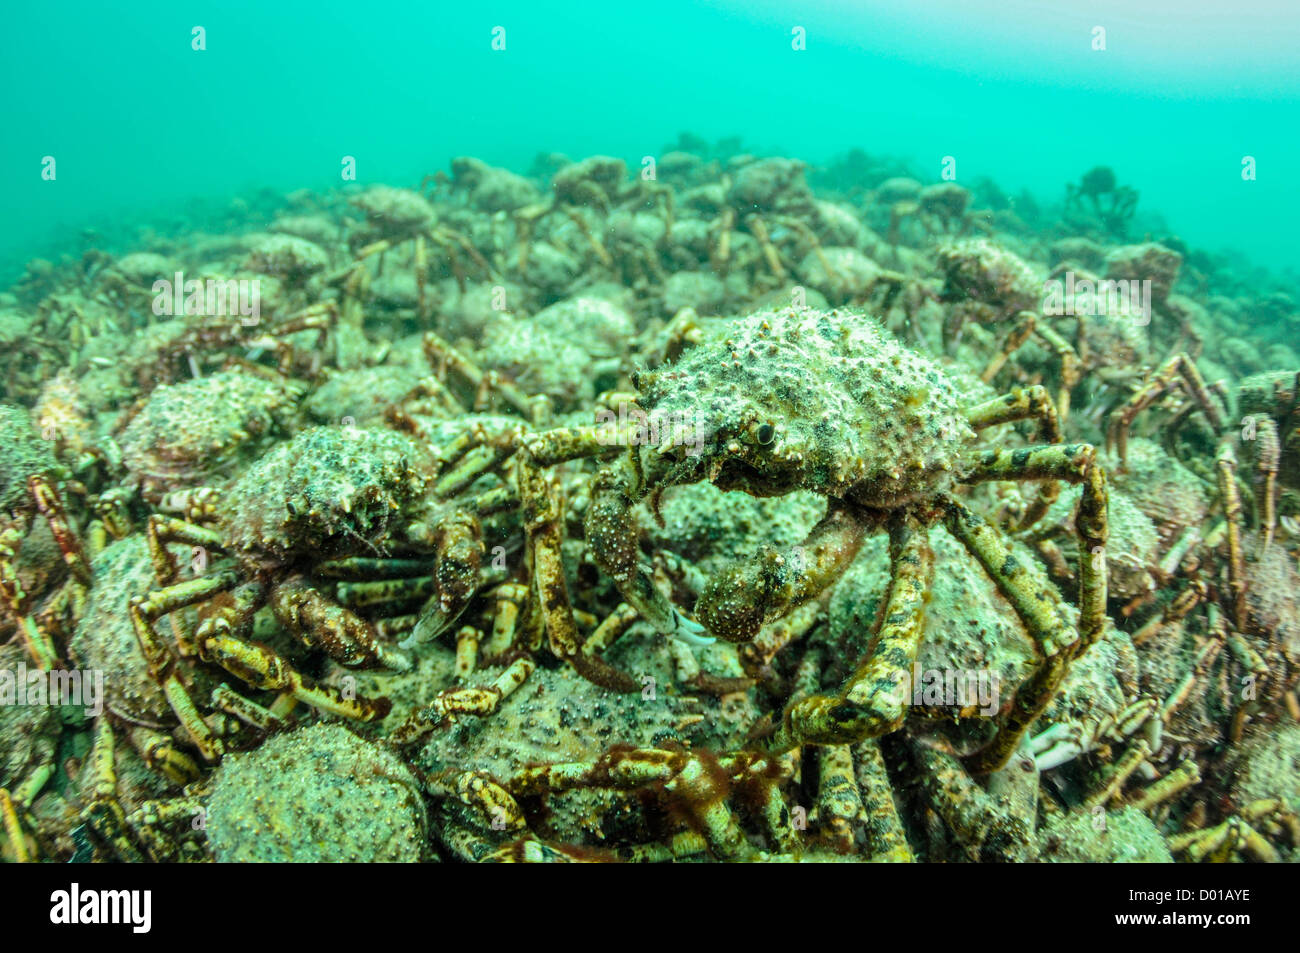 Giant Spider Crab Aggregation. - Stock Image